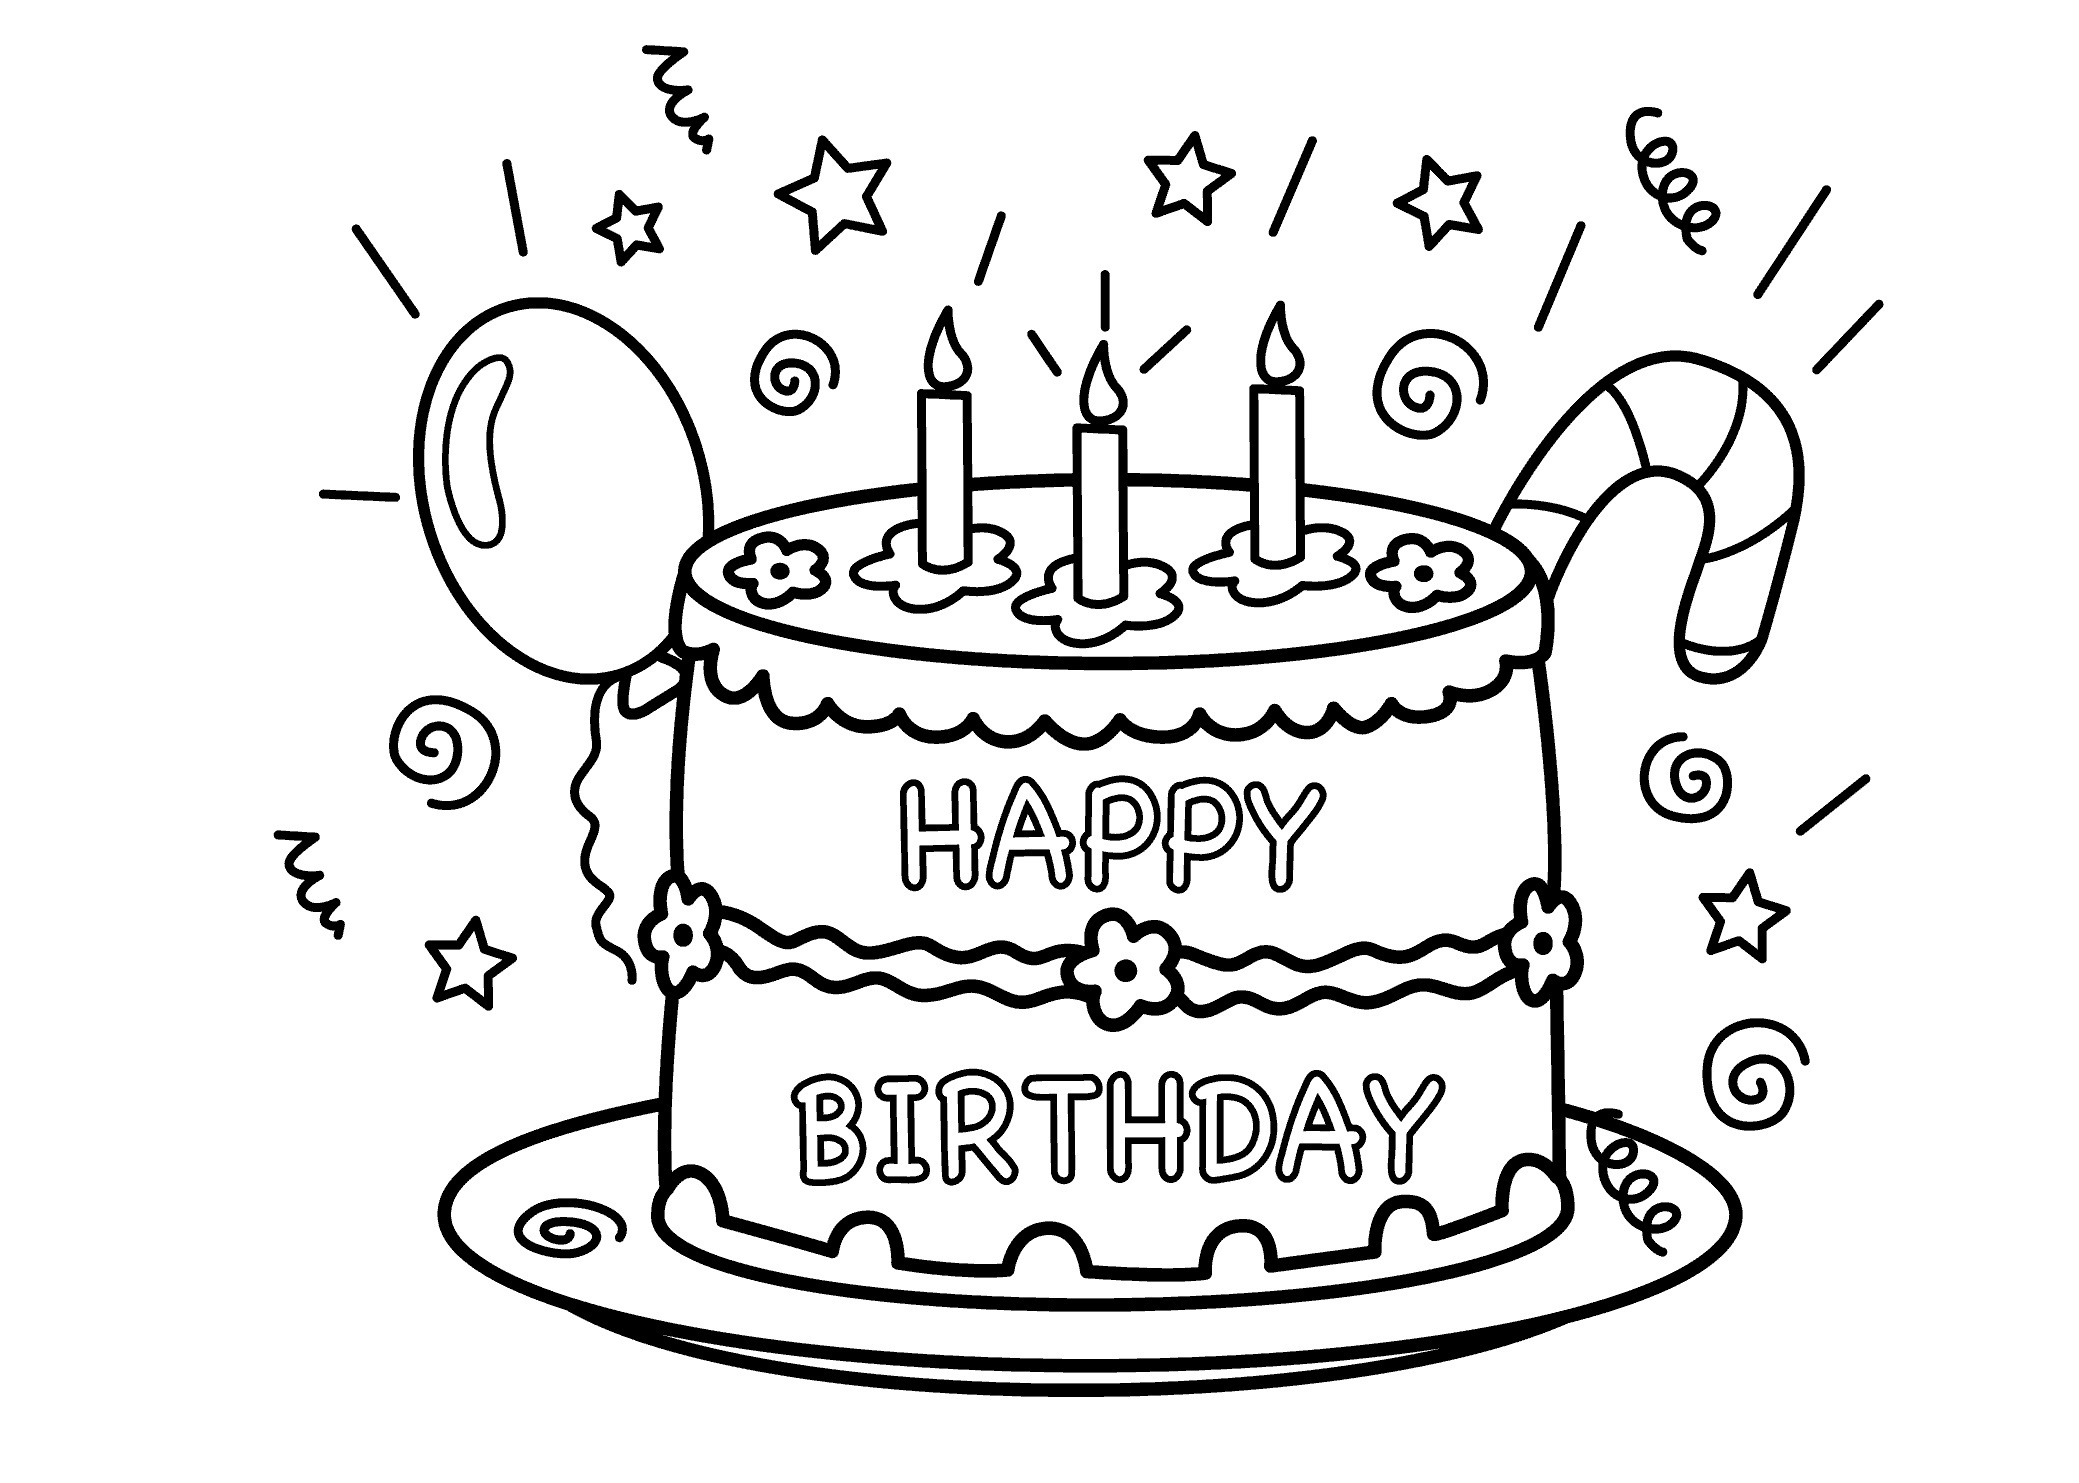 First Birthday Cake Coloring Page ~ Image Inspiration of Cake and ...